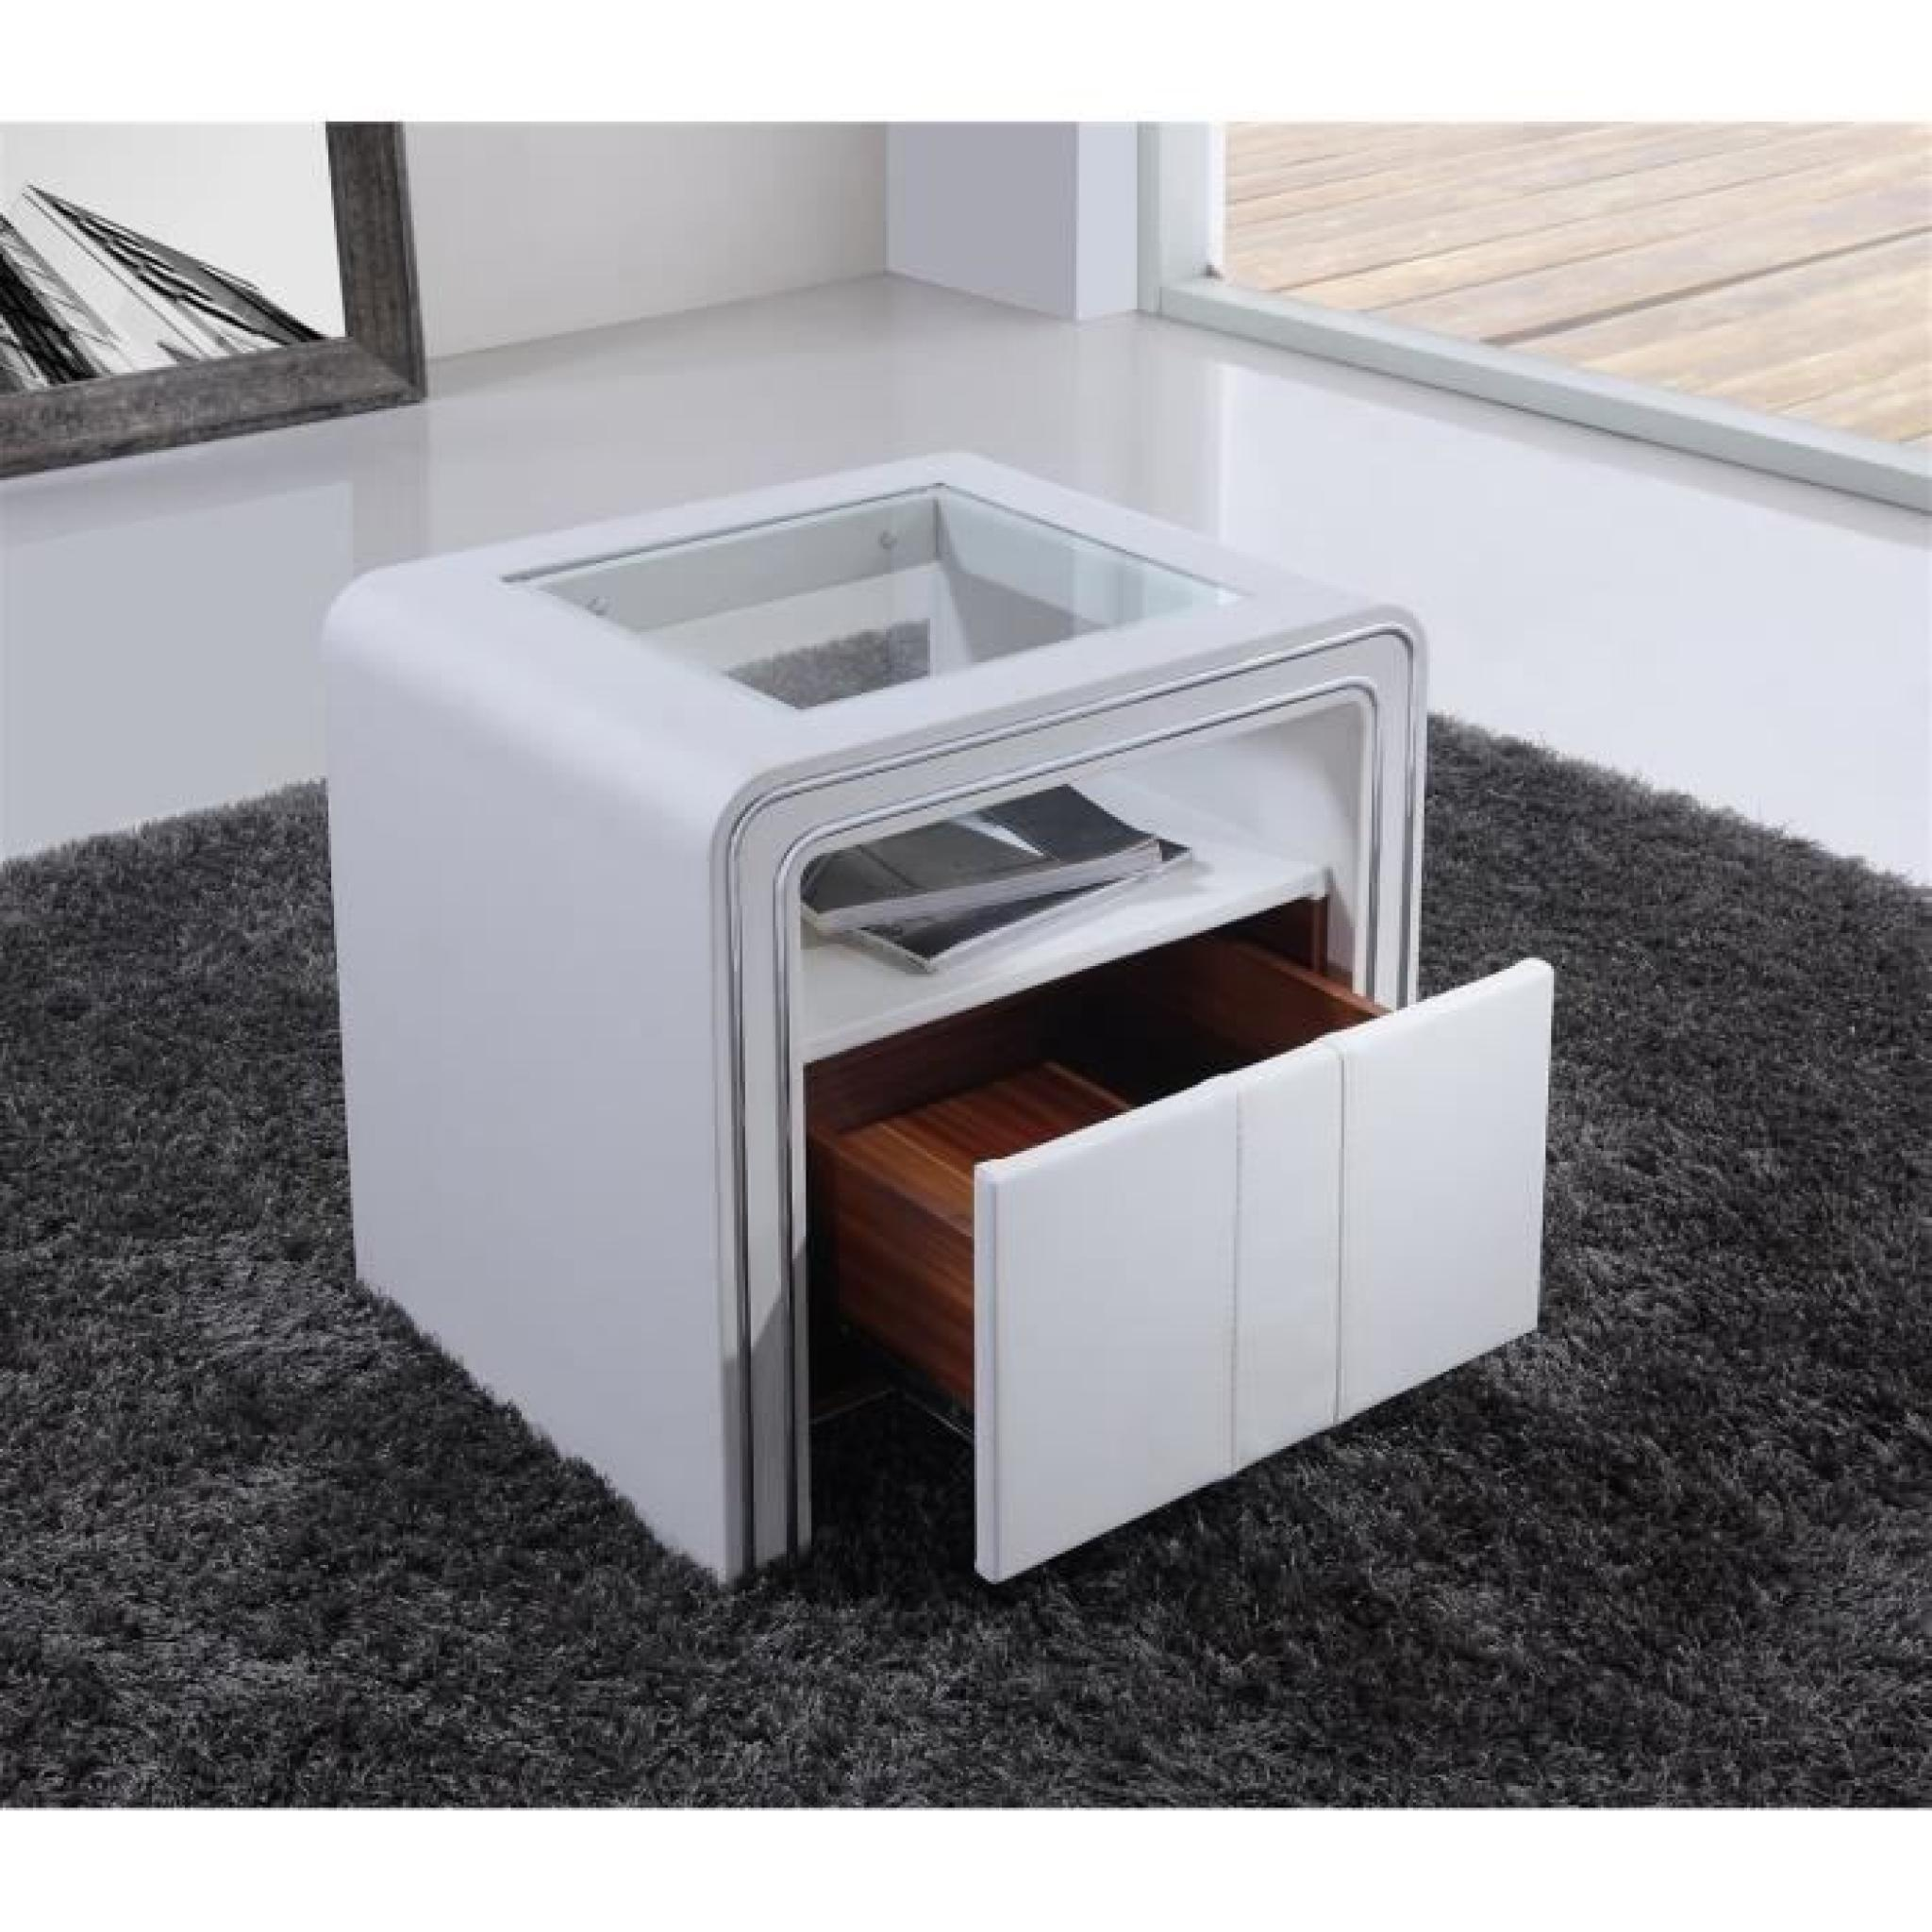 Table de chevet s85 blanc simili cuir achat vente table - Table de chevet cuir ...